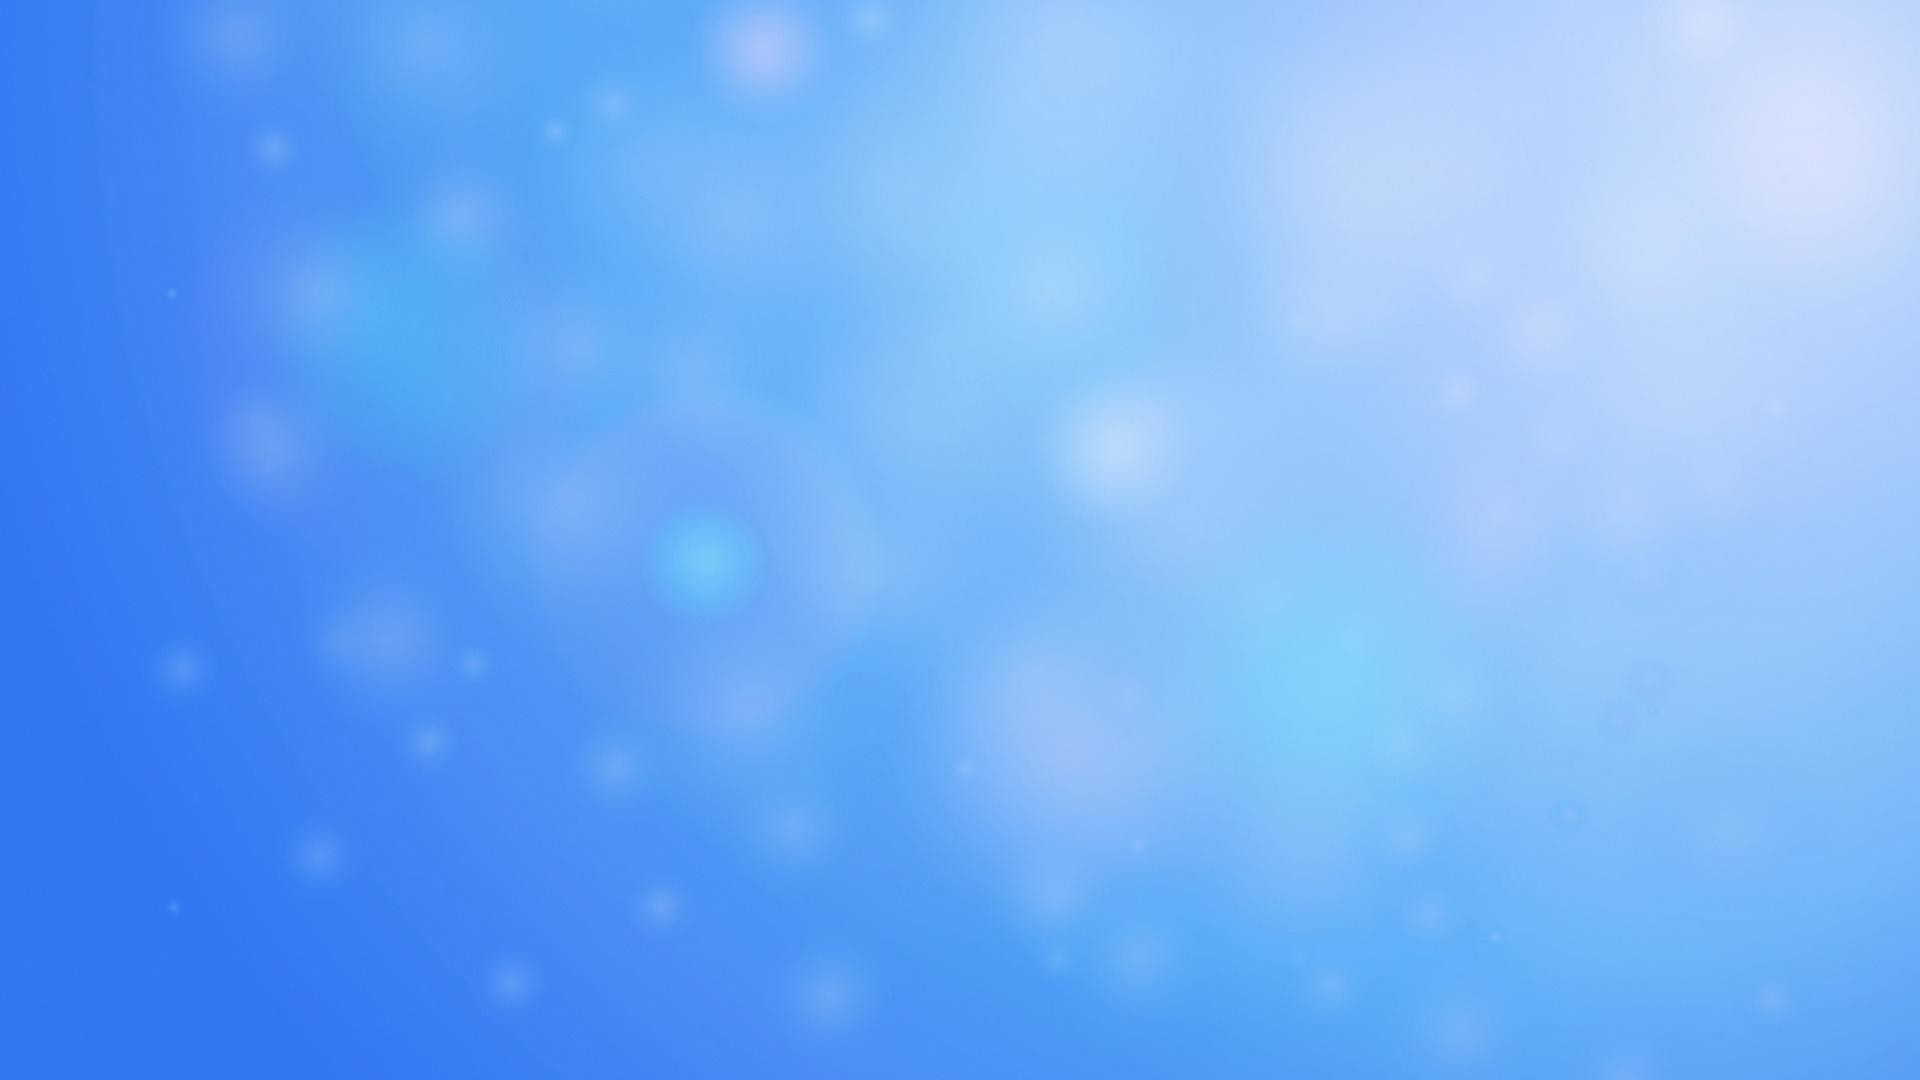 Blue and pink backgrounds for windows 7 wide wallpapers :1280×800,1440×900,1680×1050